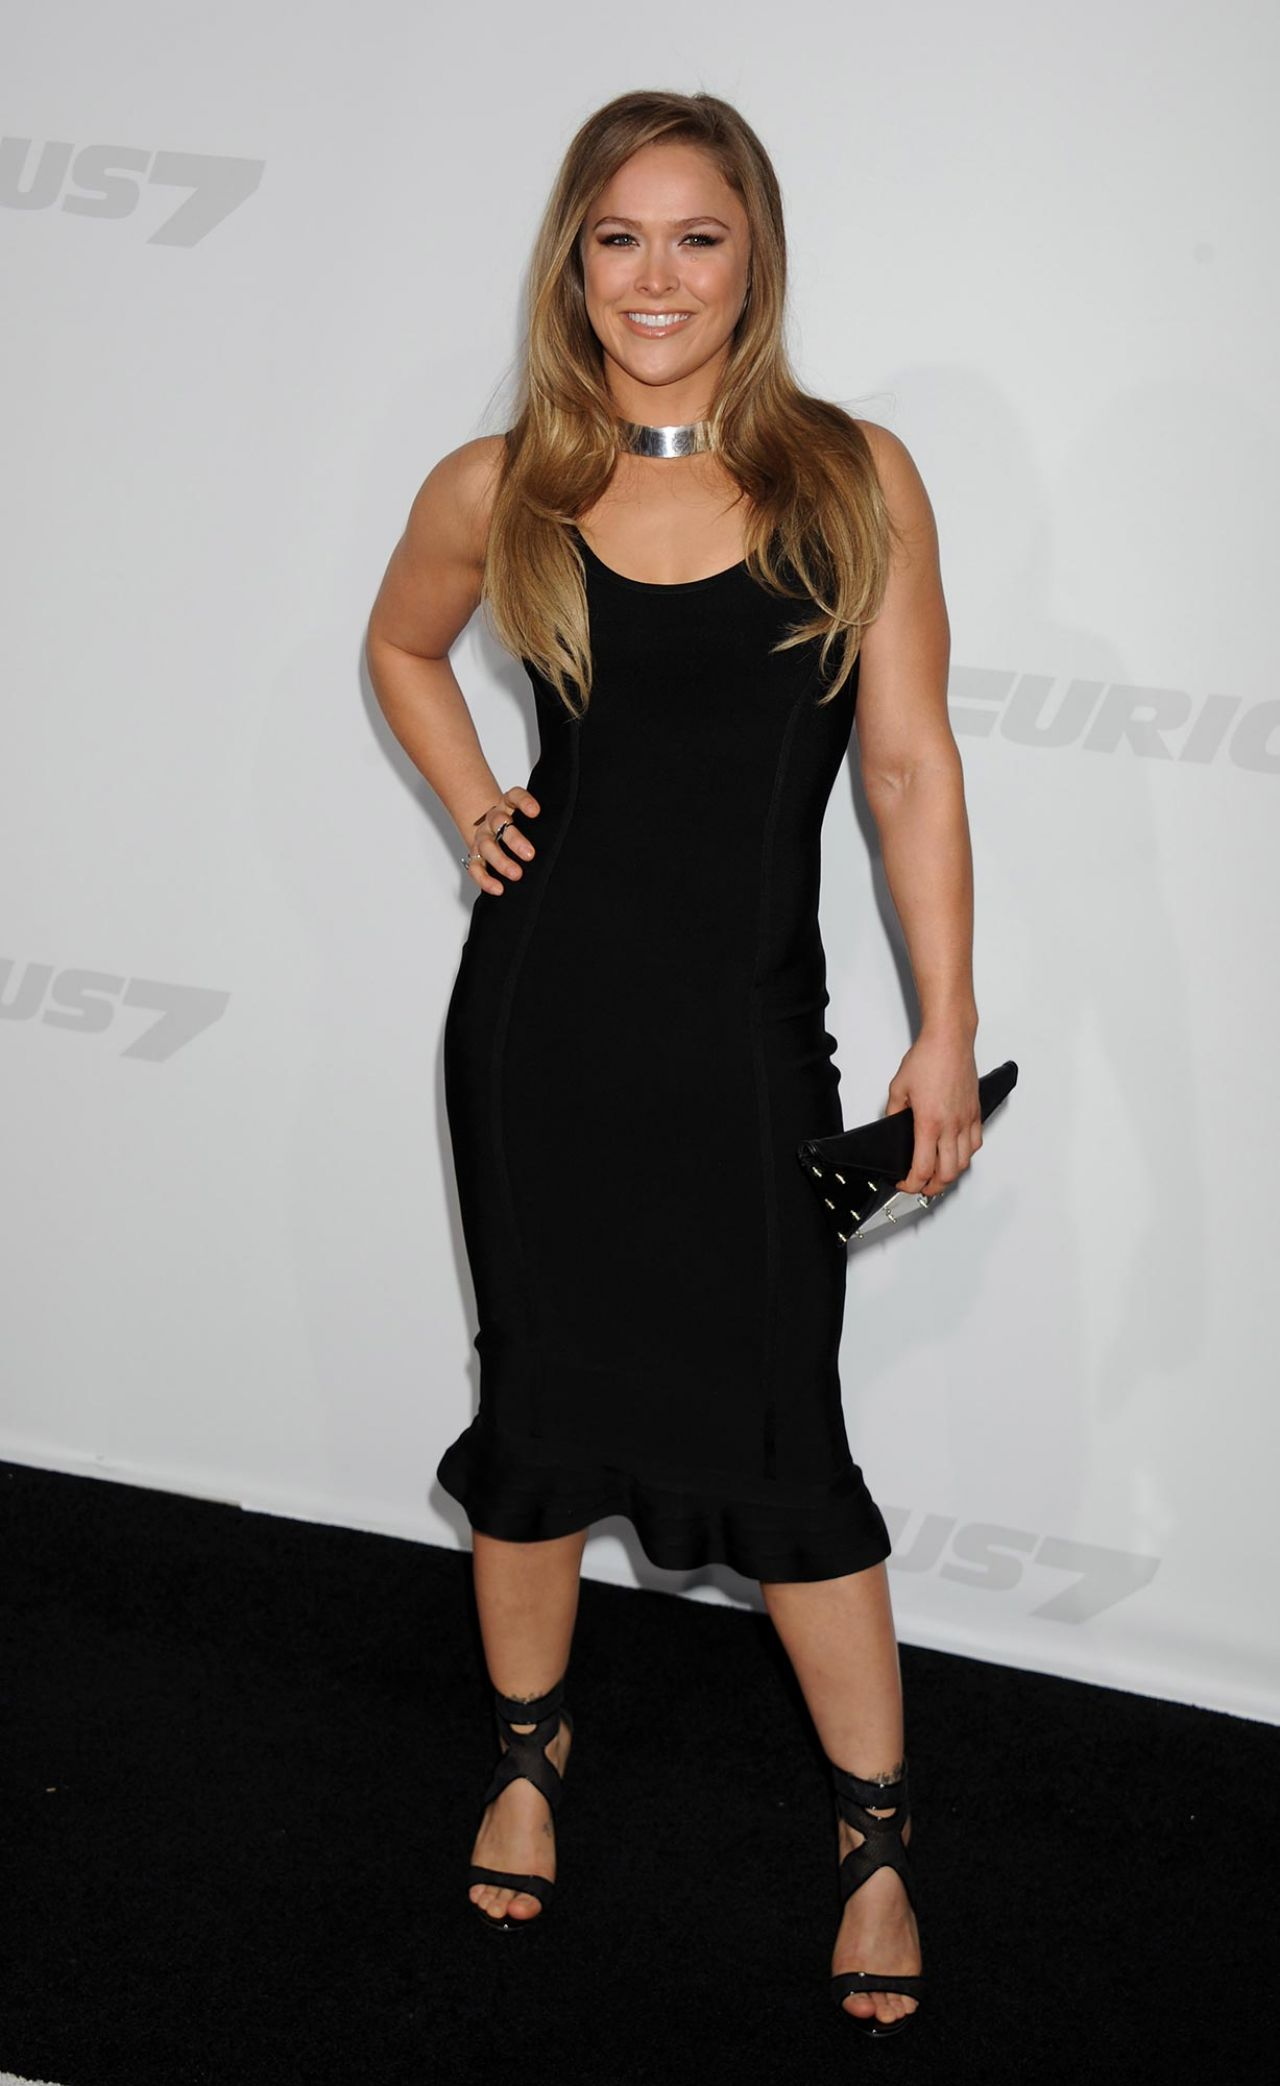 Ronda Rousey Furious 7 Premiere In Hollywood